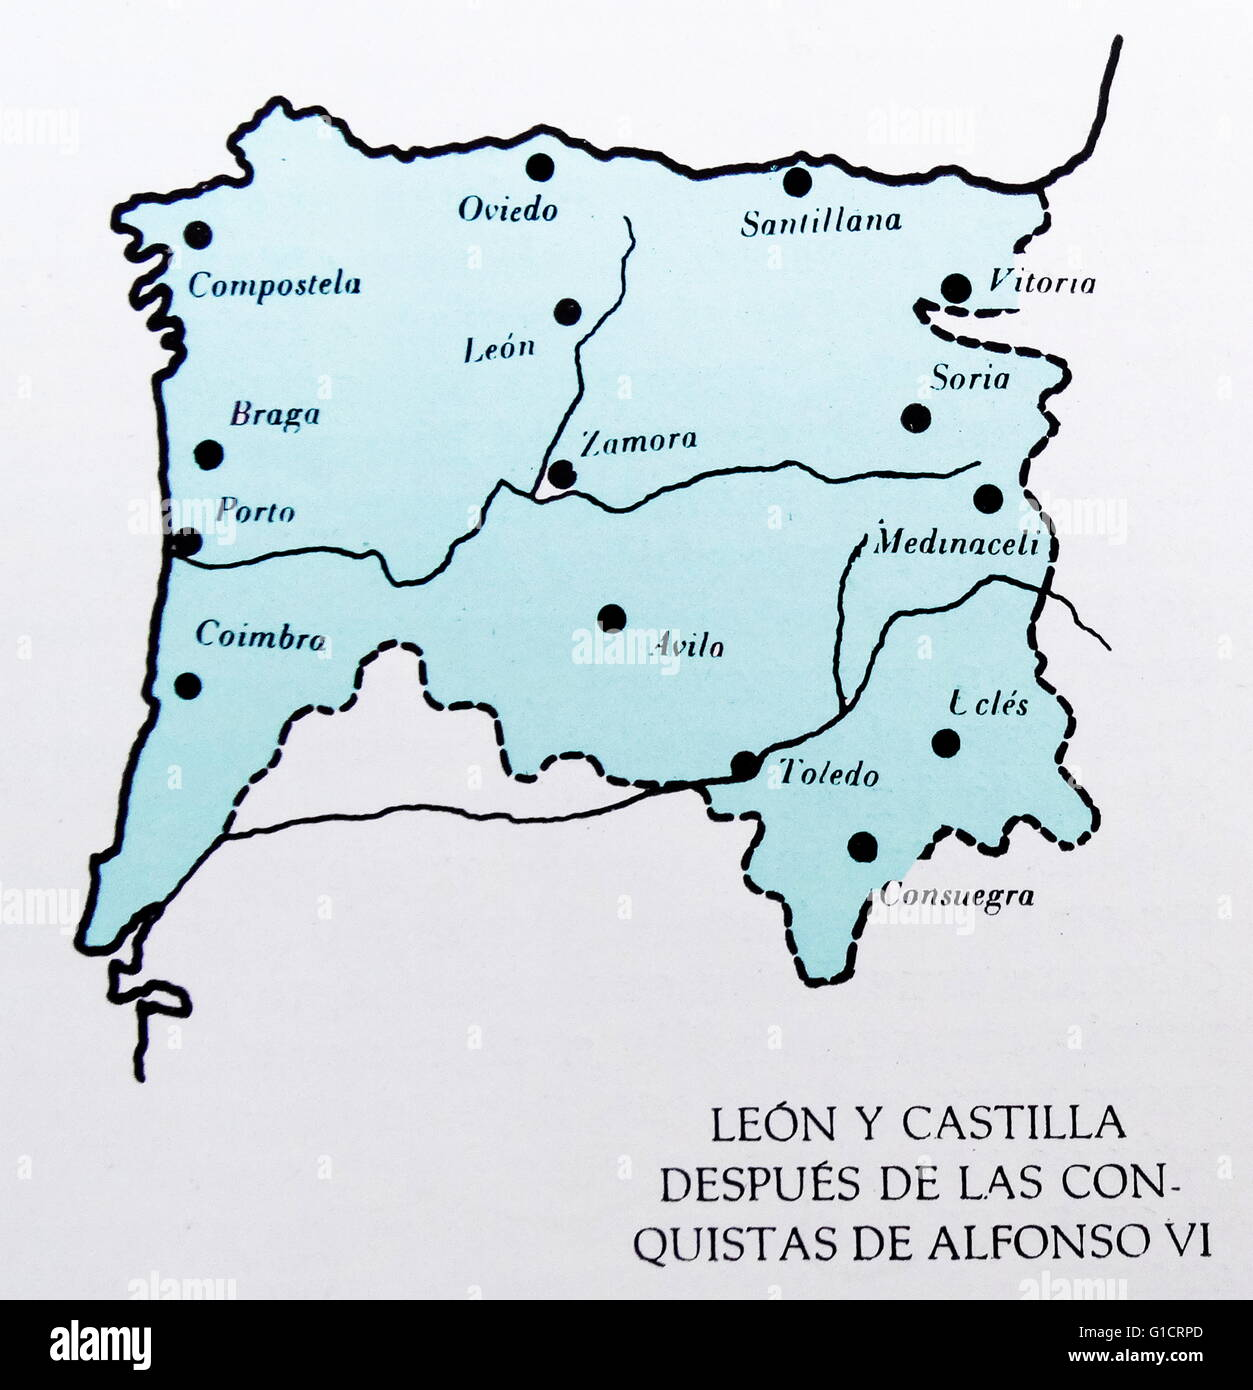 Map showing the Spanish provinces of Leon and Castille at the time